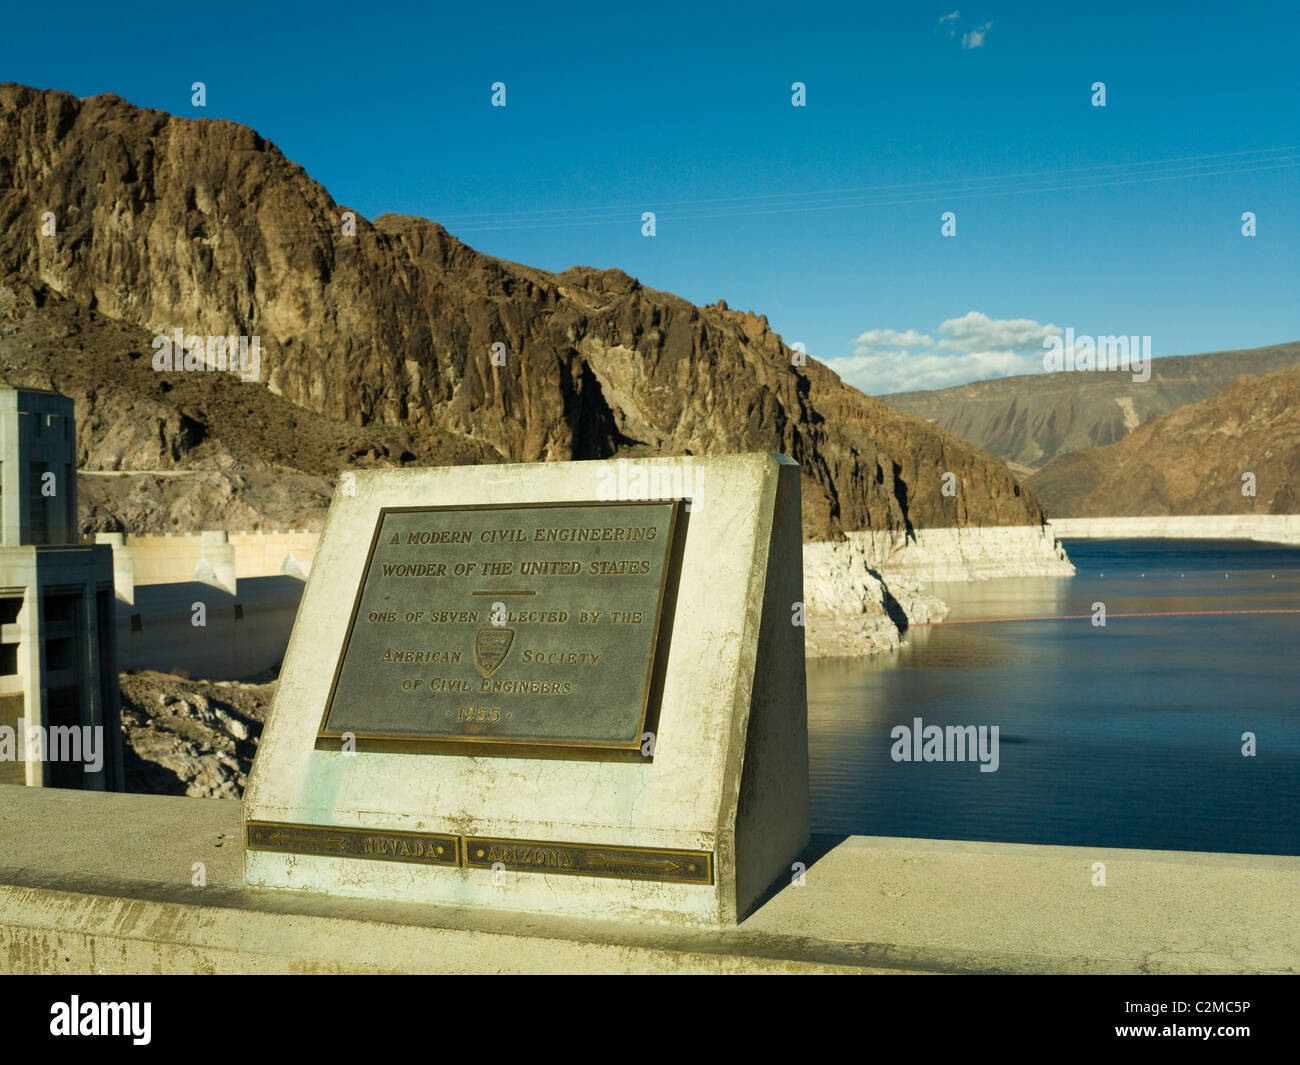 Hoover Dam plaque showing the dividing line between Nevada and Arizona states Stock Photo